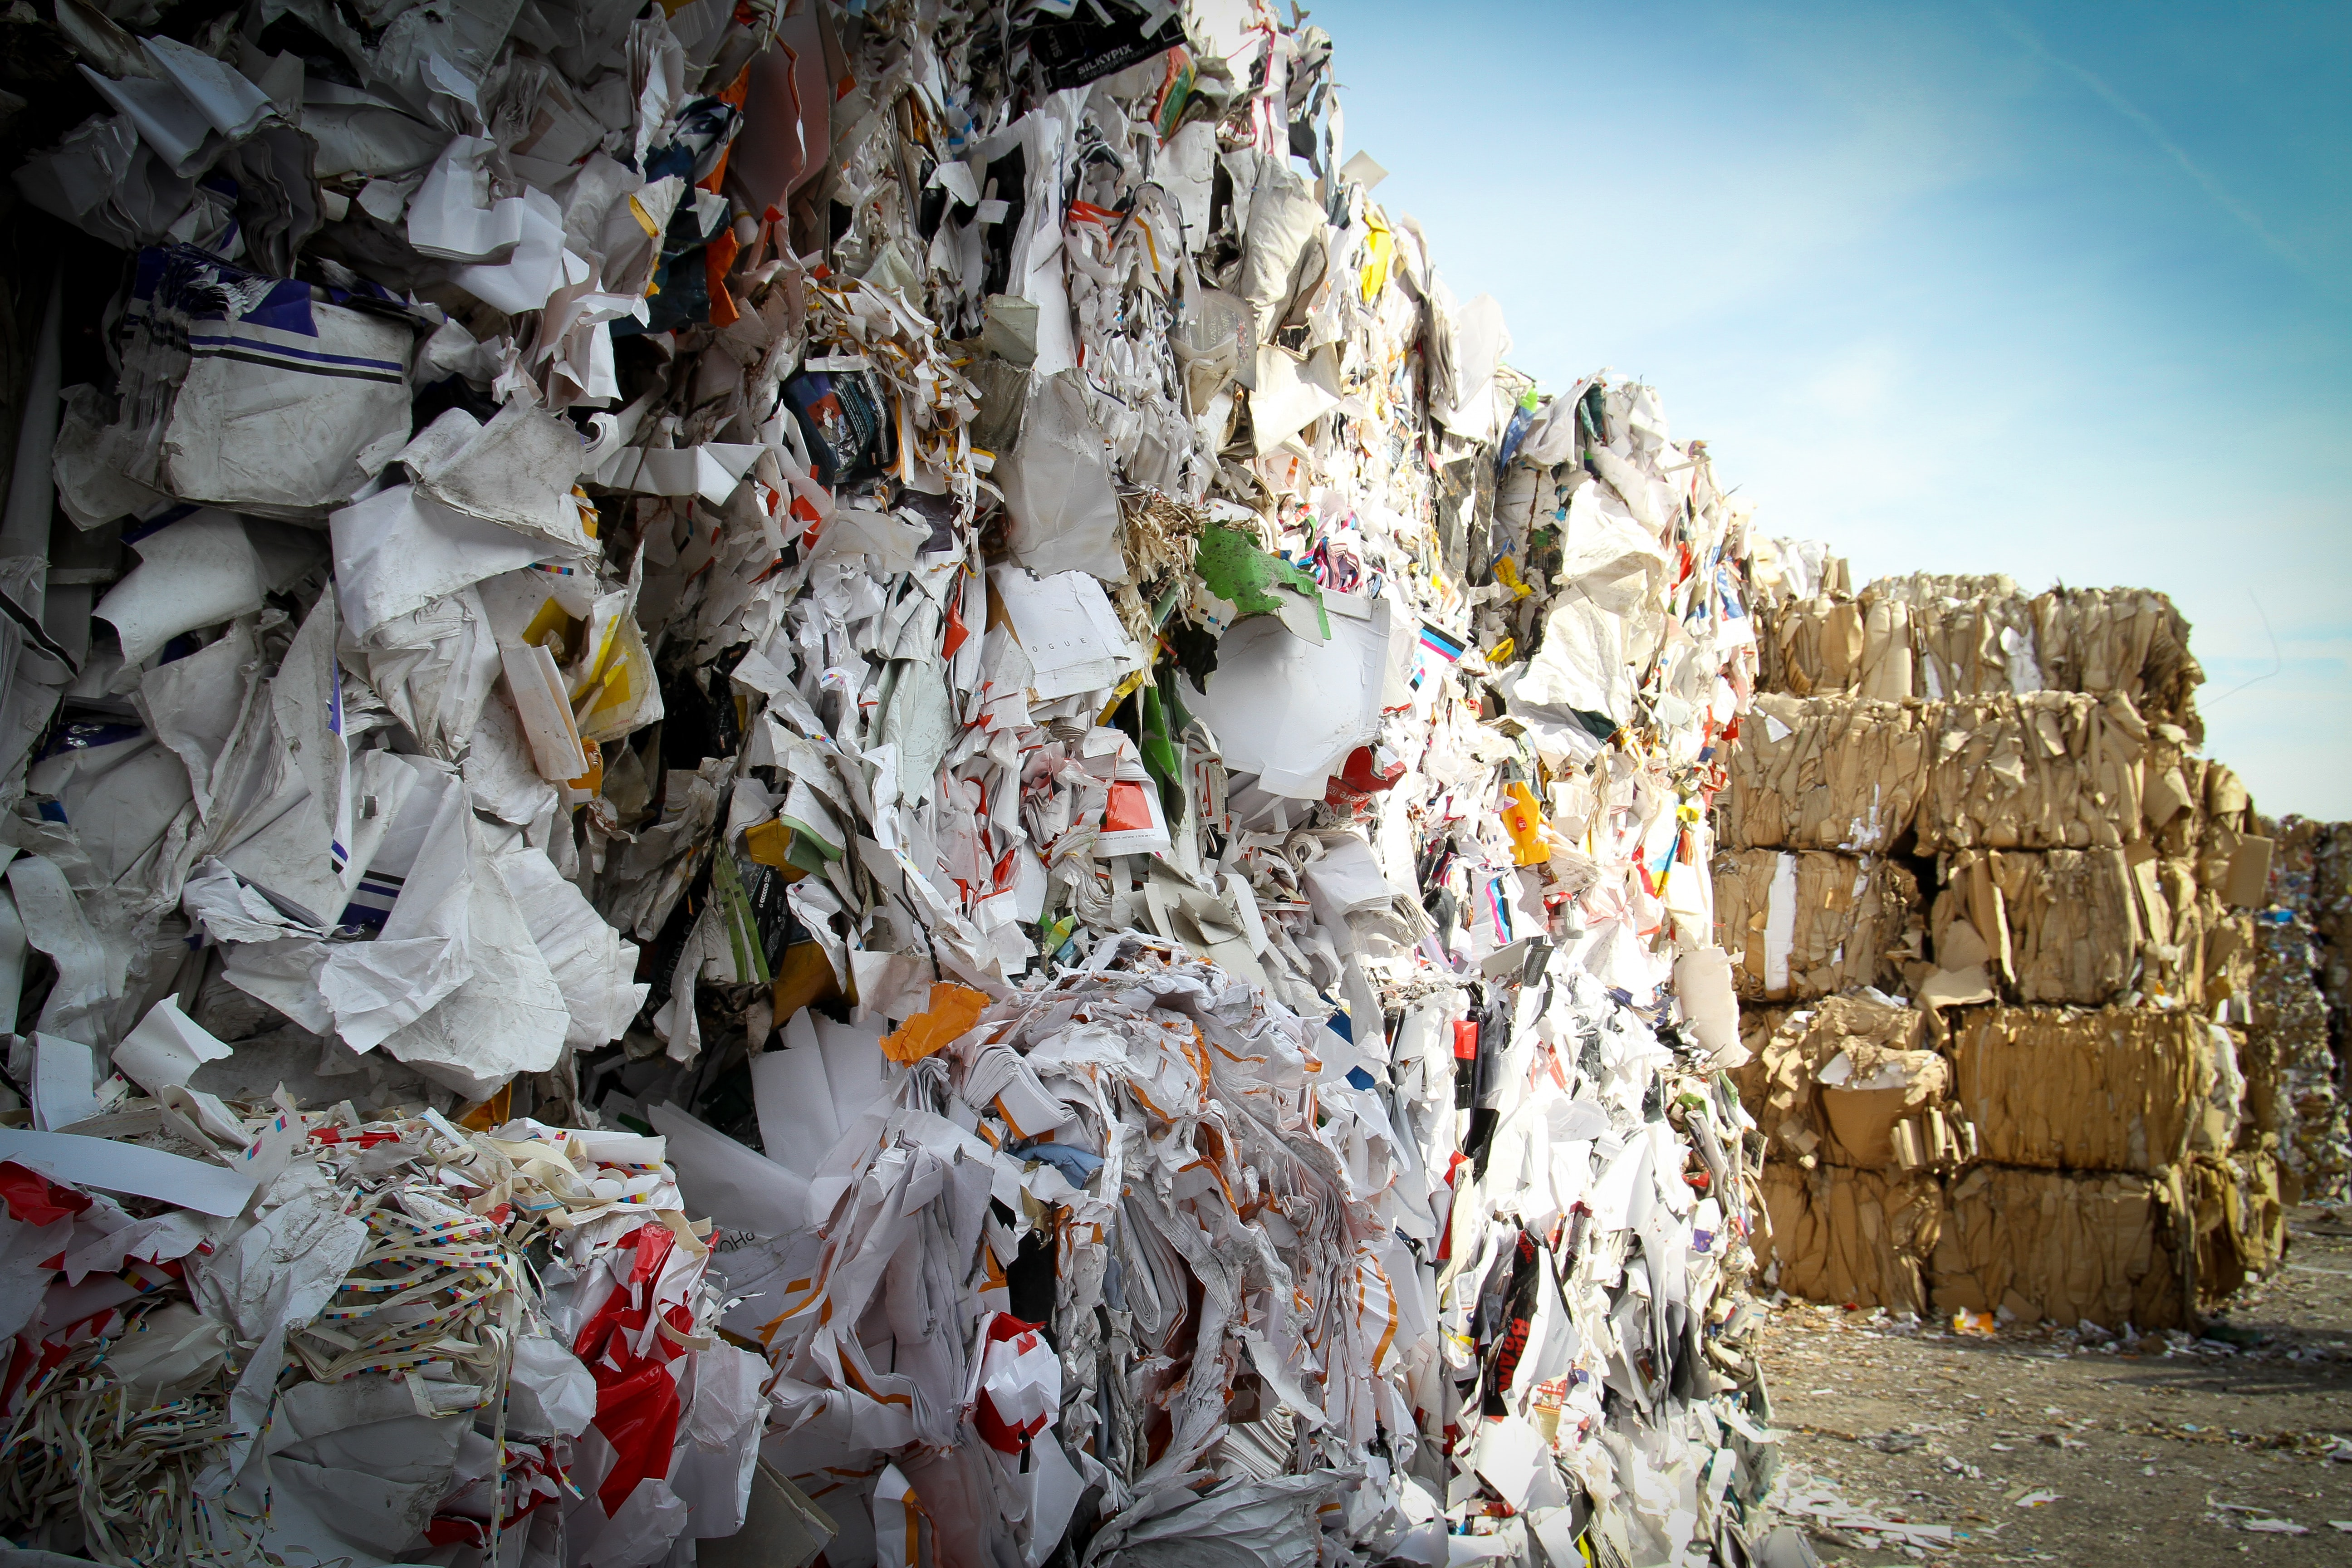 Large stacks of compress paper waste ready for recycling.